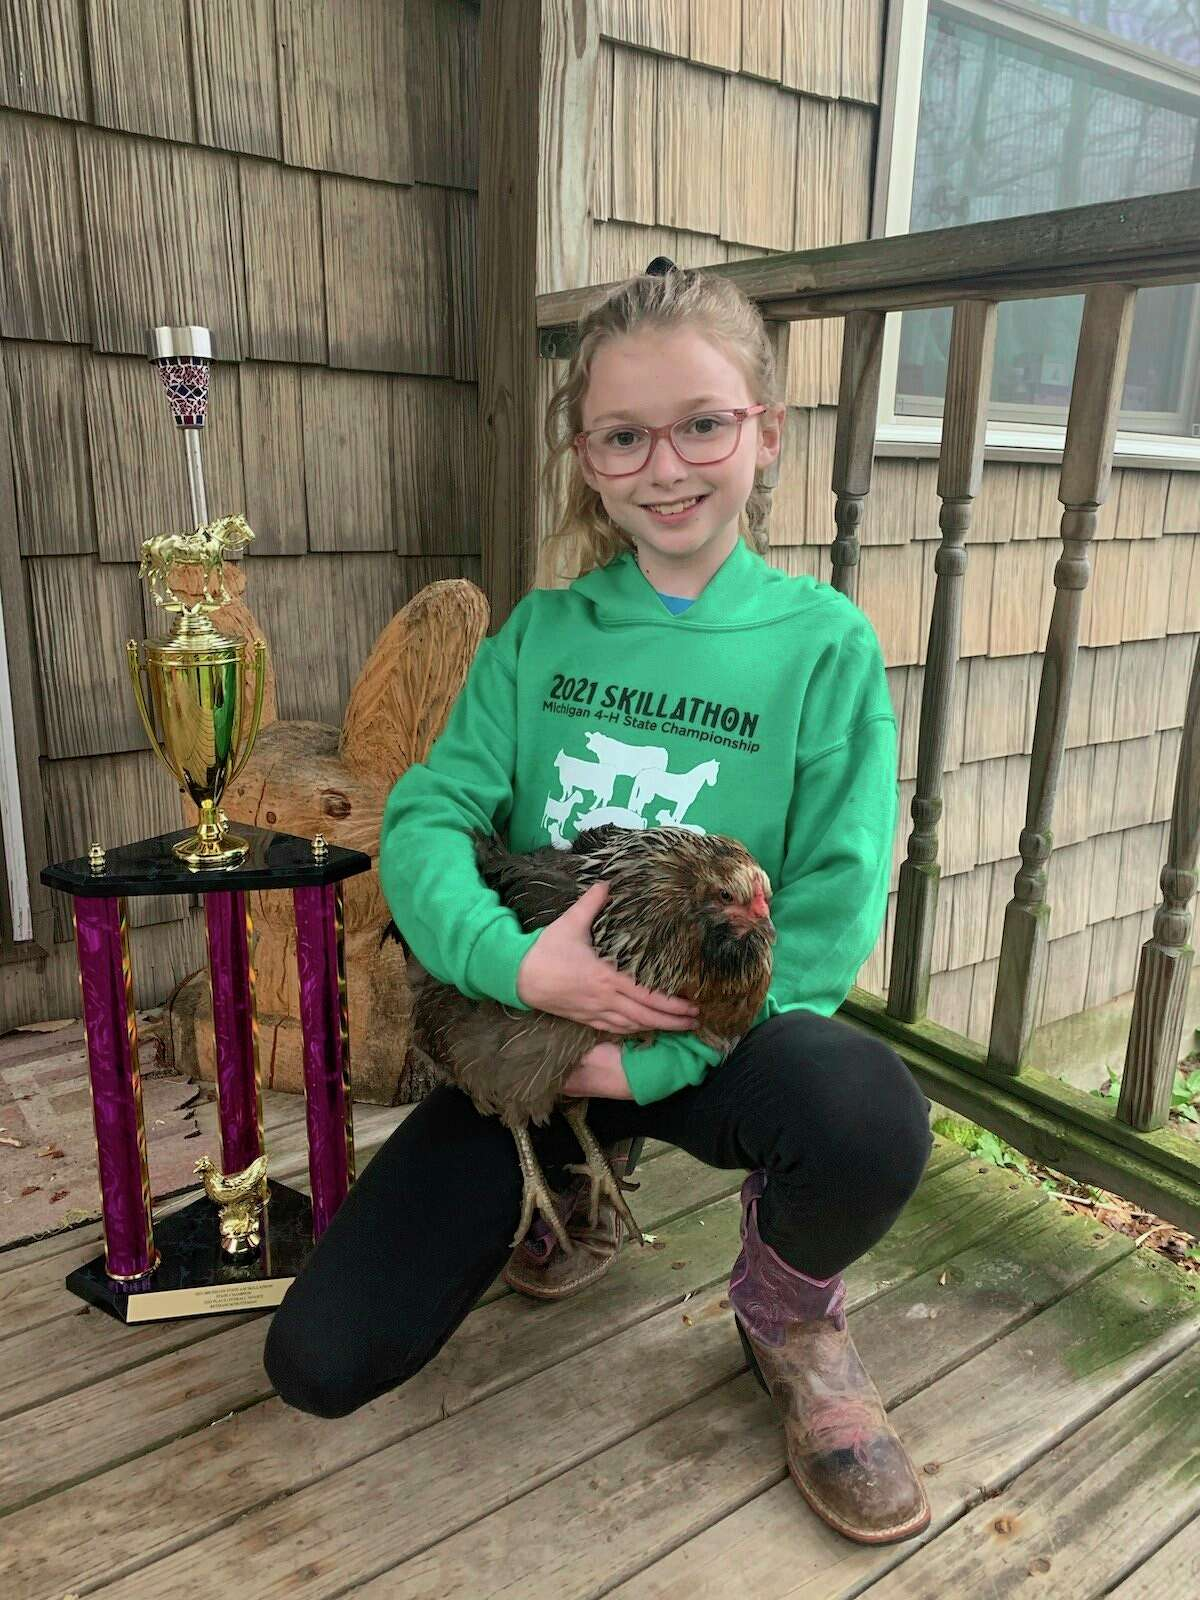 BethaniSchuiteman, age 10 of the Manistee County 4-H, posesnext to her sponsored trophy from the 2021 Michigan 4-H Skillathon.(Courtesy Photo/Jamie Smith)